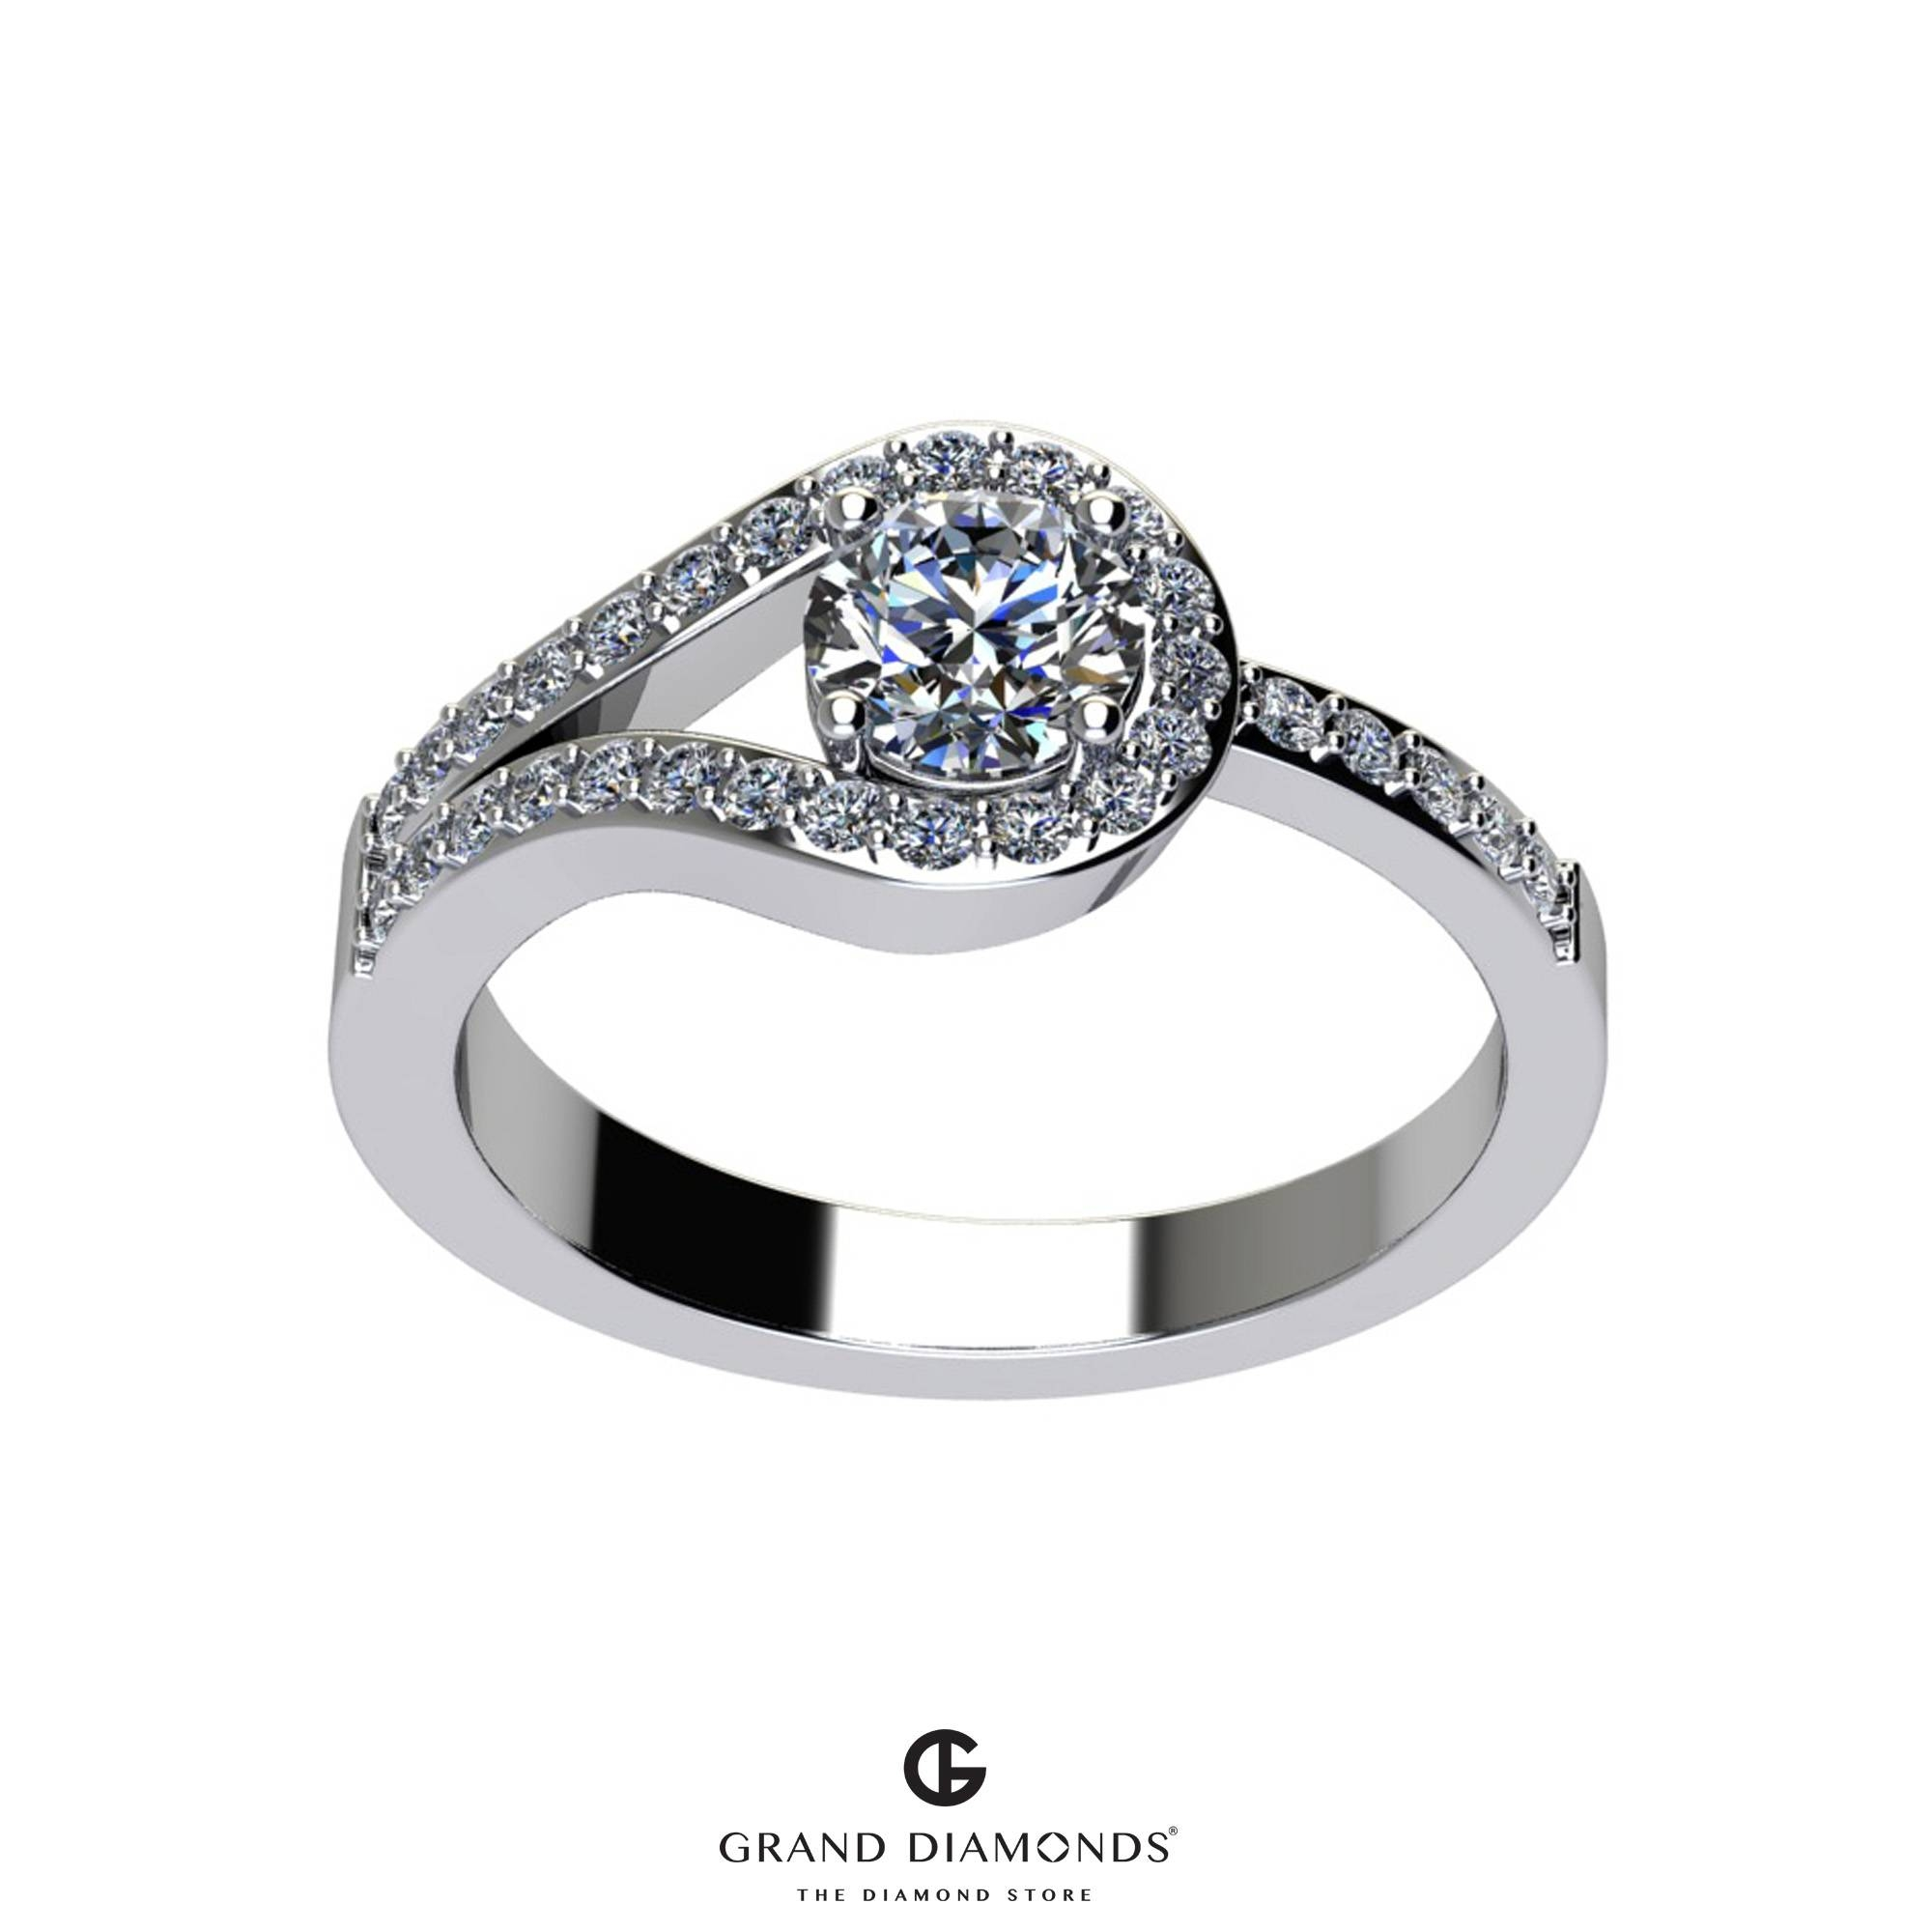 0.60cts Split Shank/halo Diamond Engagement Ring Gd504a | For Halo Diamond Wedding Rings (Gallery 10 of 15)